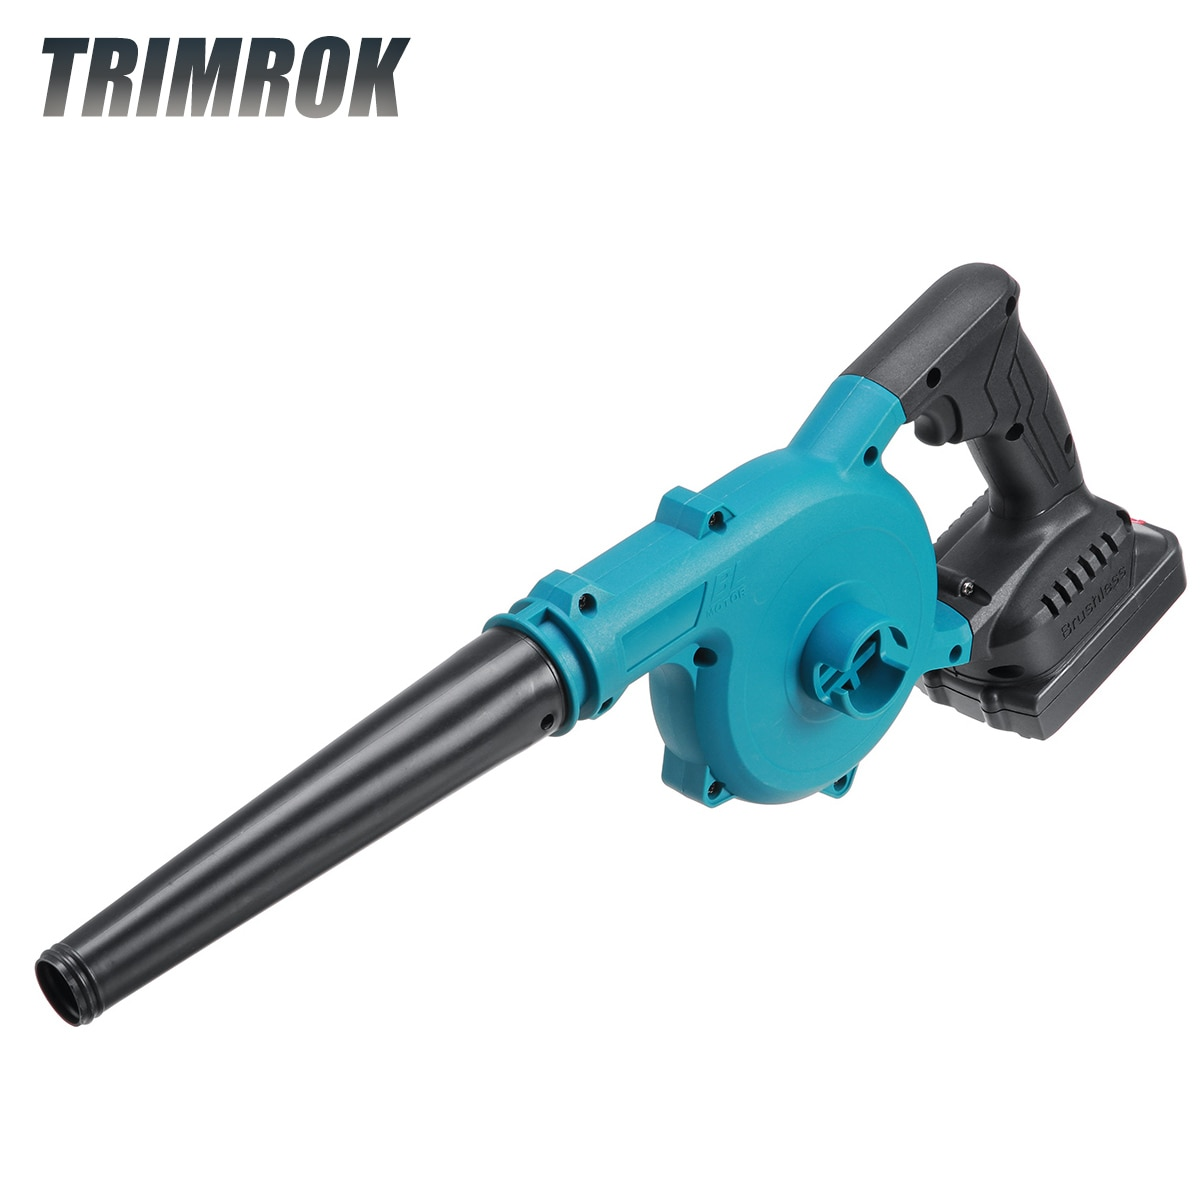 TRIMROKCordless Electric Air Blower & Suction Portable Leaf SnowBlower Computer Dust Collector Cleaner For Makita 18V Battery